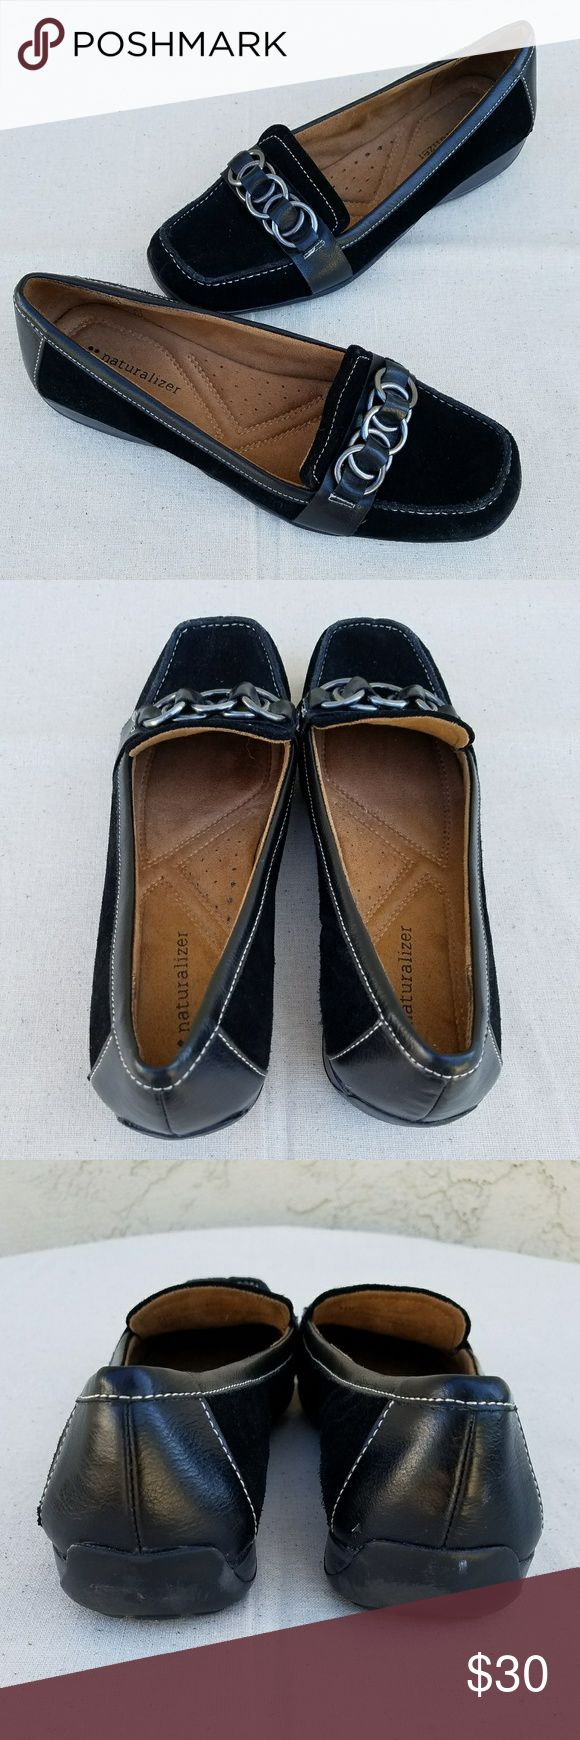 """Naturalizers Cecily Black Suede Loafers Genuine suede black leather slip on loafers. Silver tone looped rings on the vamp and white stitch detail. Sueded cushioned insole and rubber soles. EUC. Minimal wear to soles. 1"""" heel. Naturalizer Shoes Flats & Loafers"""